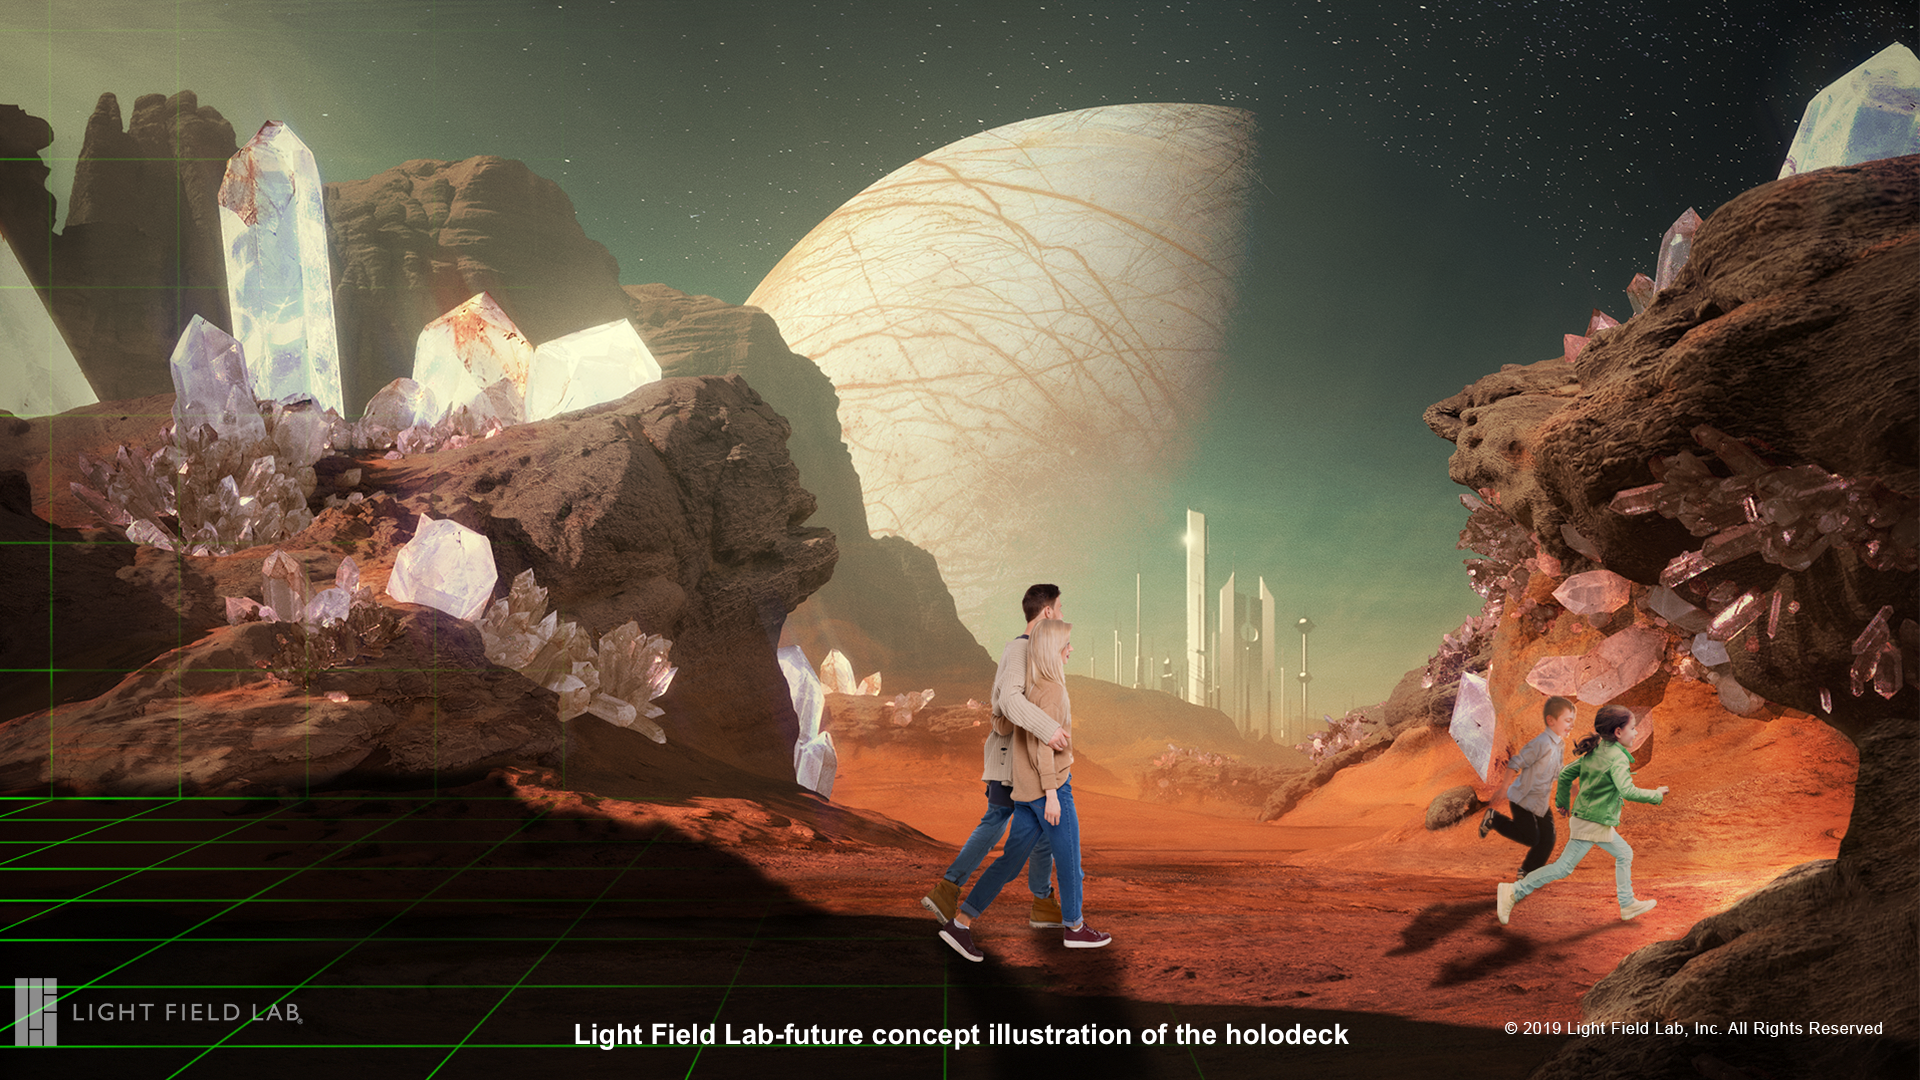 Light Field Lab future concept illustration of the holodeck-alien planet.